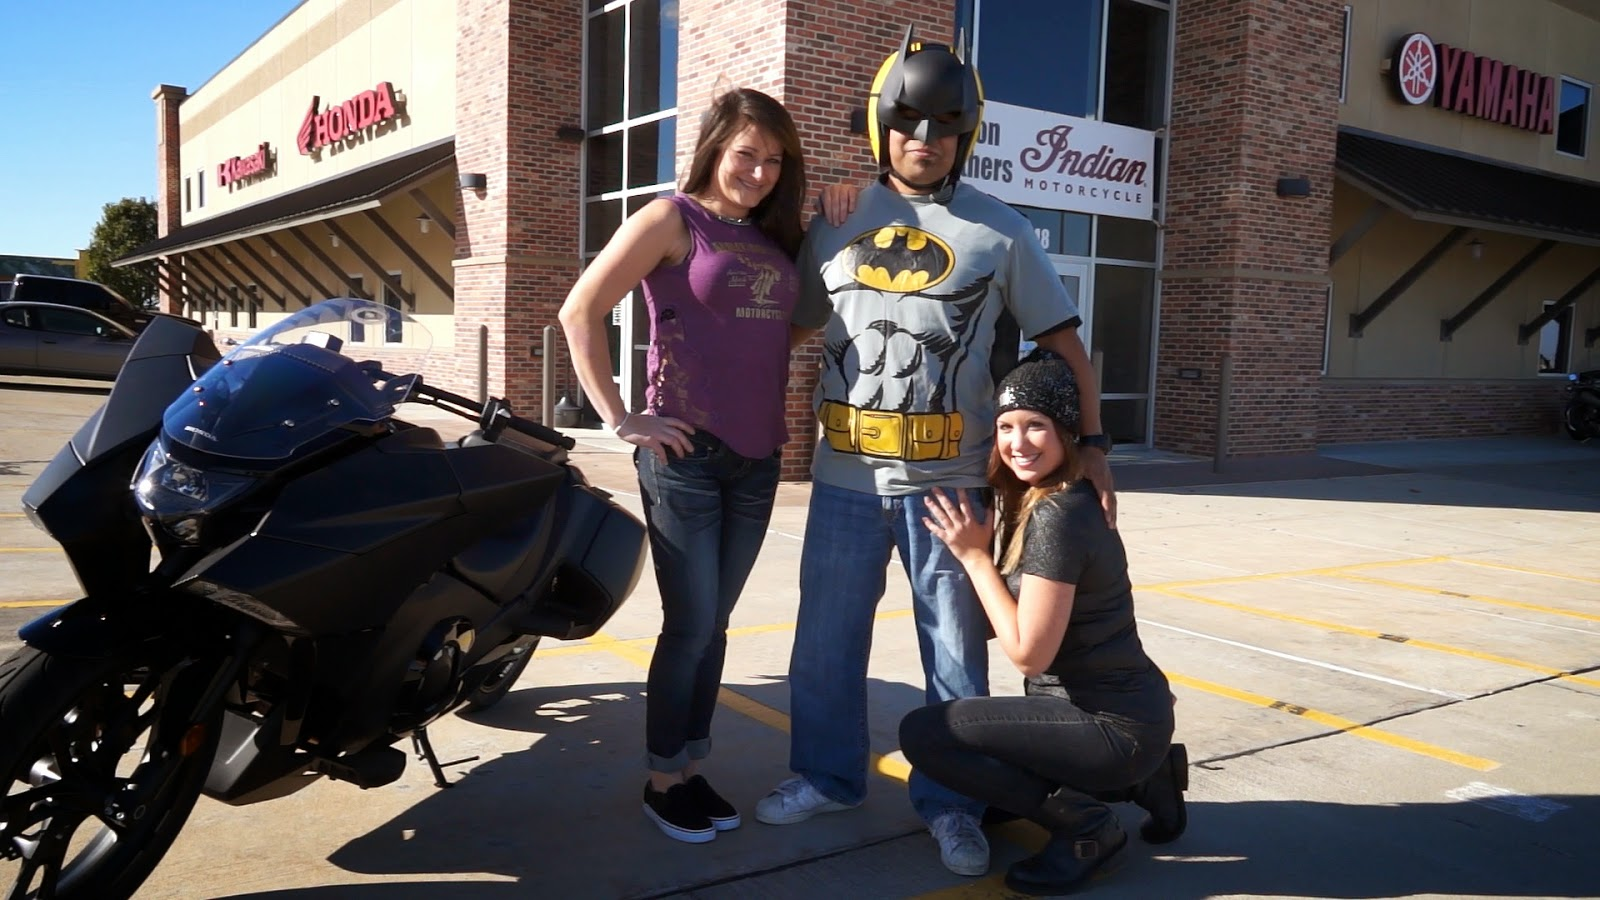 Batman's new bike brings the Harley-Davidson Girls out